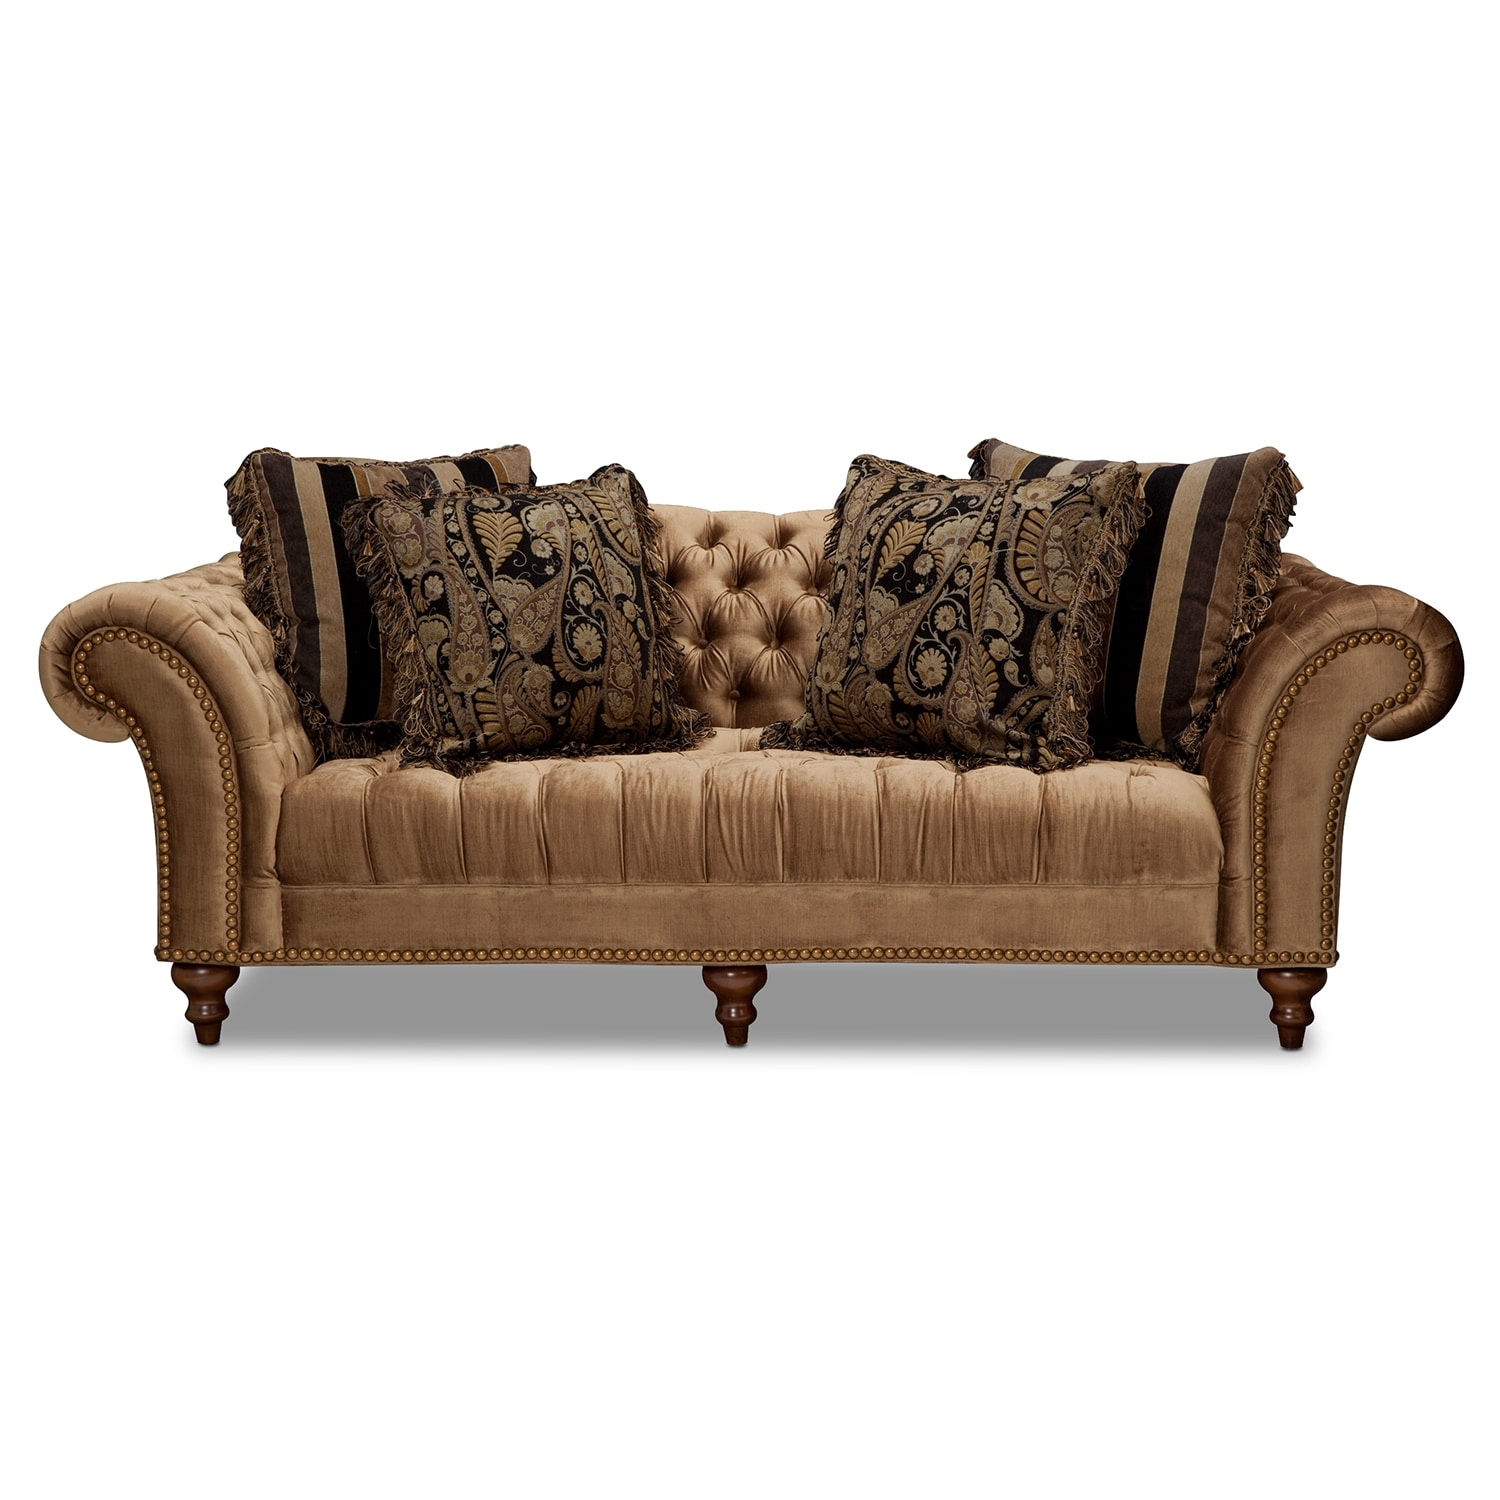 Brittney sofa bronze american signature furniture for Signature furniture